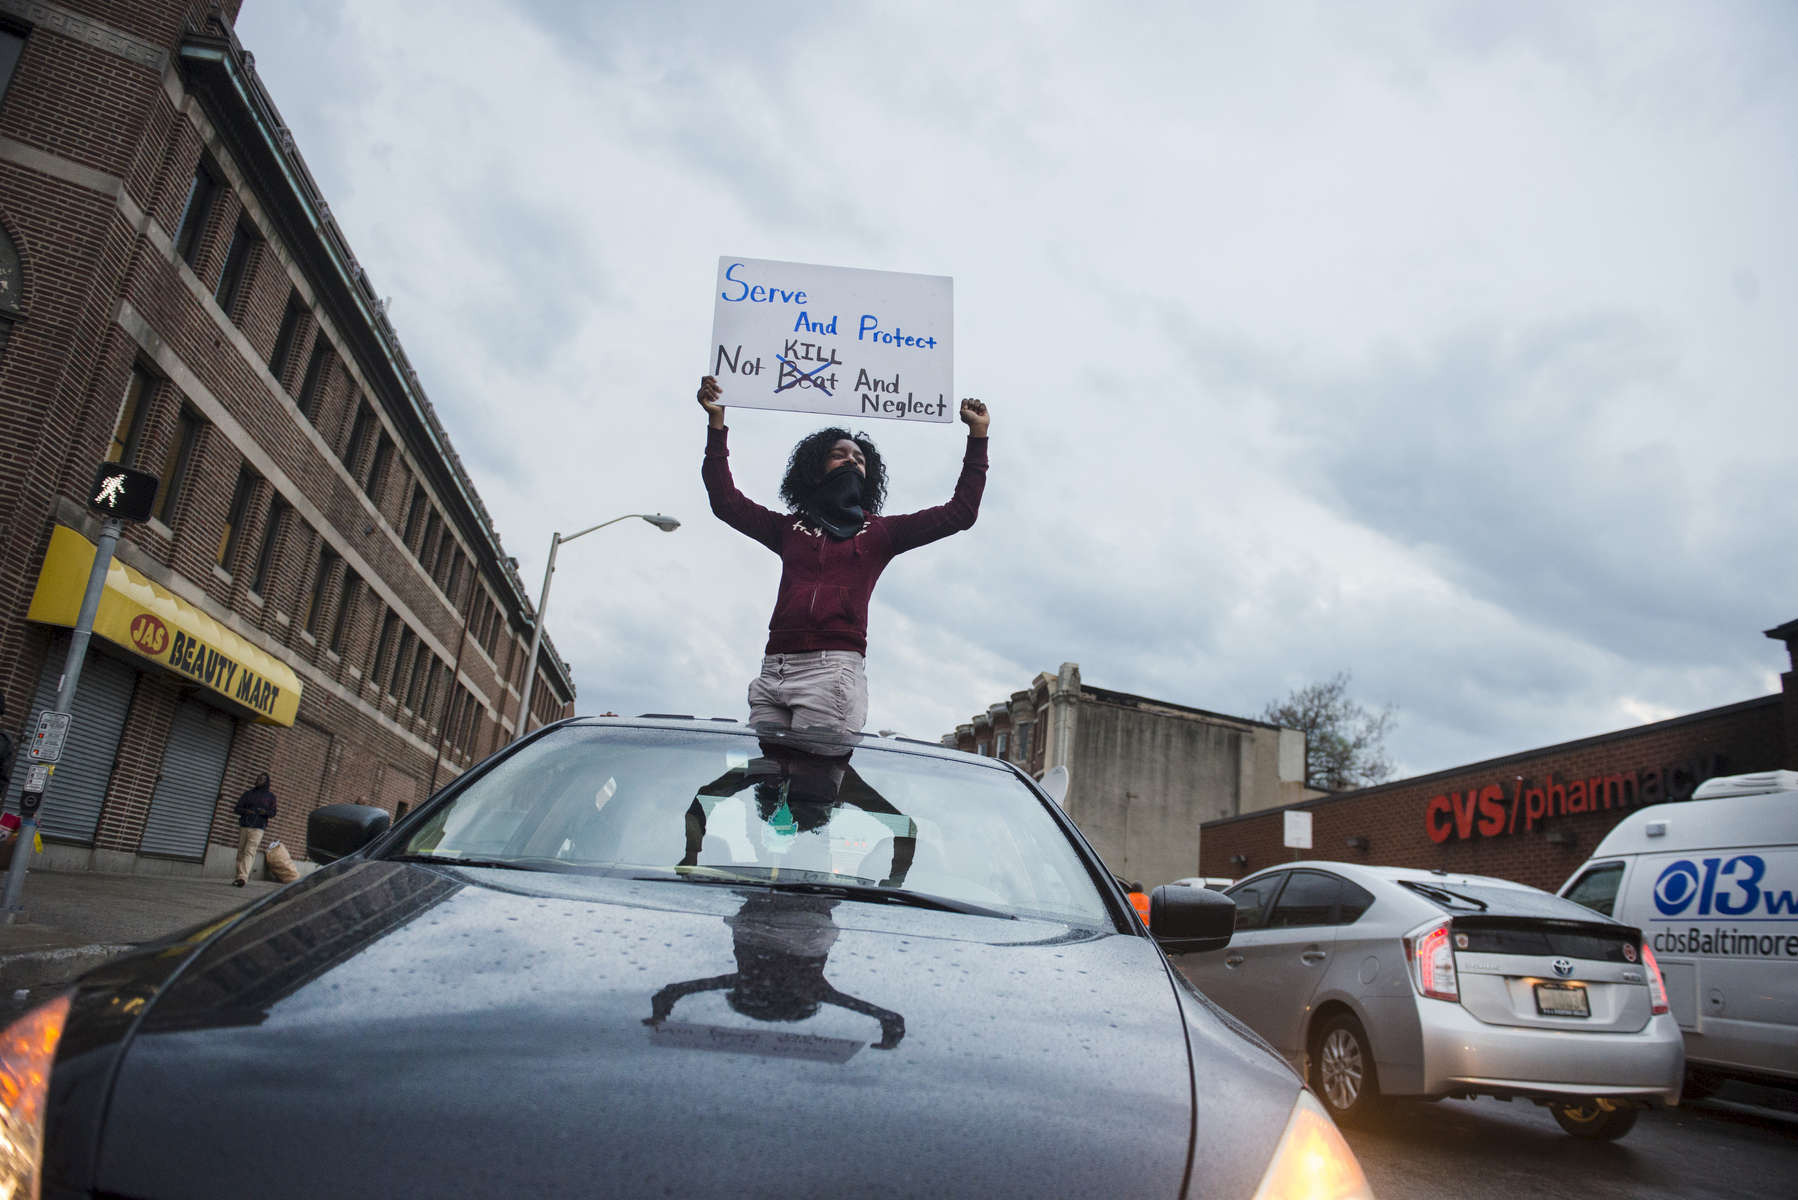 BALTIMORE, MD- APRIL 30:  Tajah Marshall, 17, supports protesters from her mothers car near the corner of North Ave and Pennsylvania Ave. on Thursday, April 30, 2015 in Baltimore, MD. (Photo by Amanda Voisard/For the Washington Post)